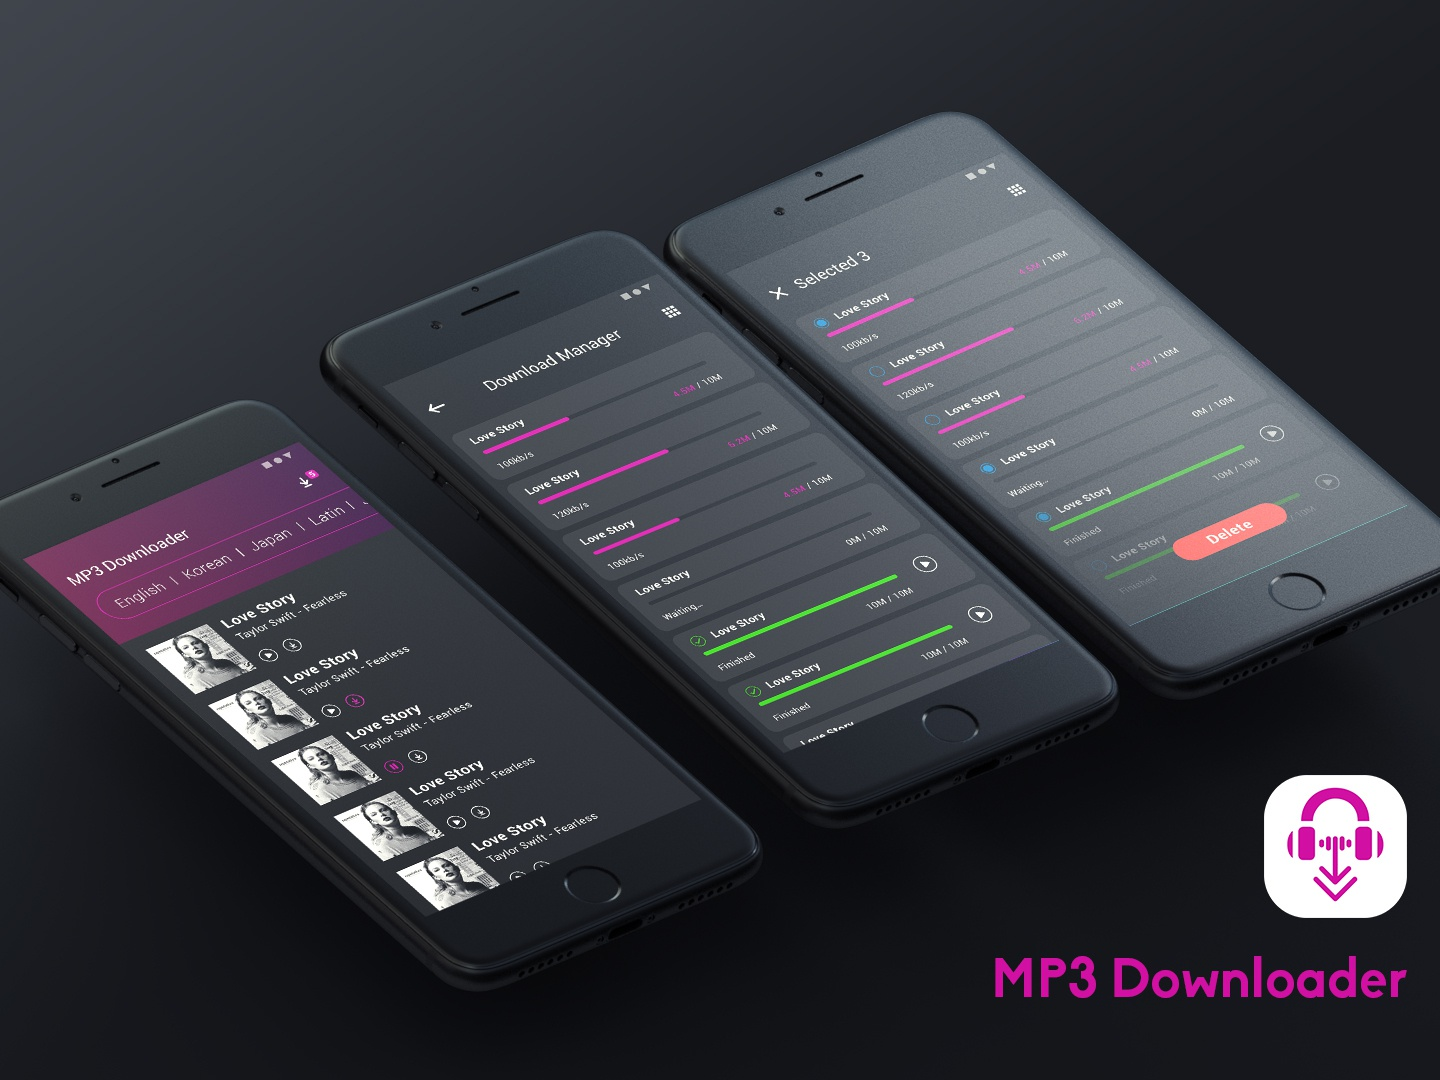 UI Design - MP3 Downloader ue ui clean app clean app logo design